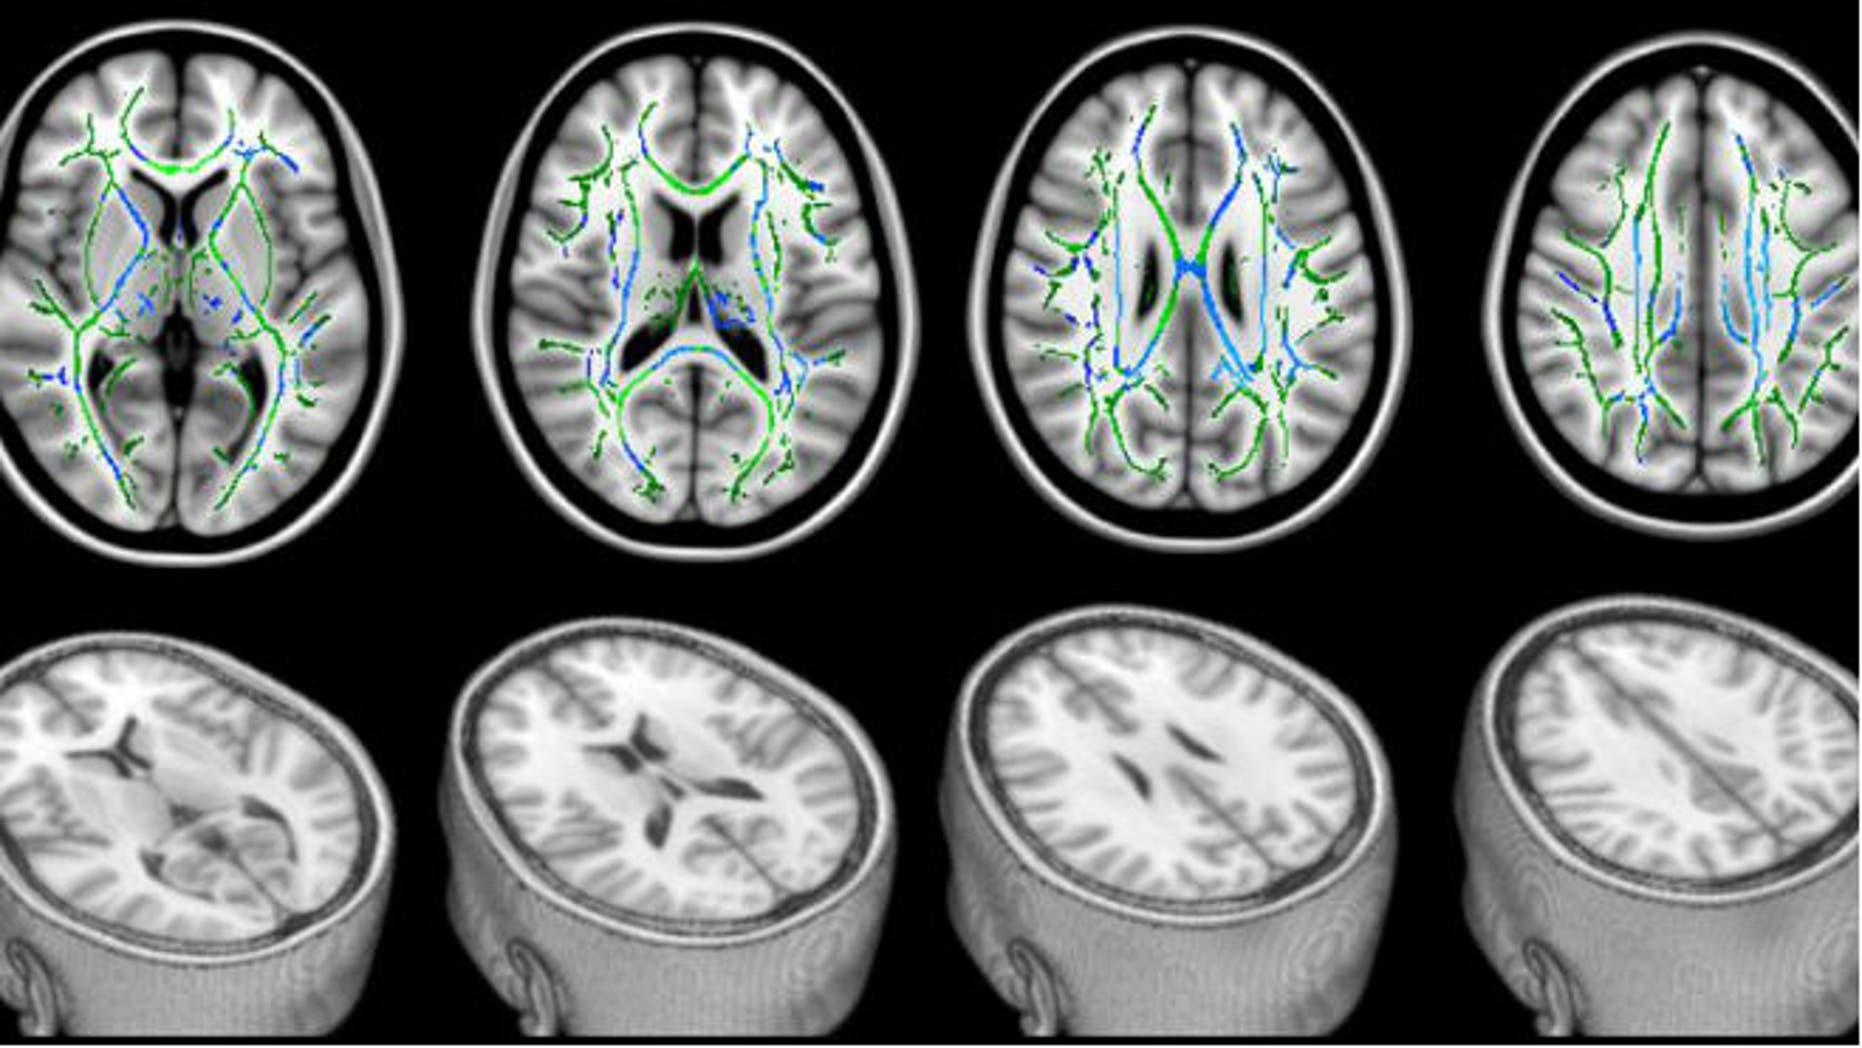 "In these DTI scans, the bottom row shows views of a head with the top sliced away to reveal the brain. The top row shows the corresponding top views of the brain. The green lines represent the white matter— the brain's ""wiring."" The blue areas are the damaged parts of the white matter that seem to be responsible for cognitive problems experienced by study patients with mild traumatic brain injury. (Professor Blamire/Newcastle University, UK)"